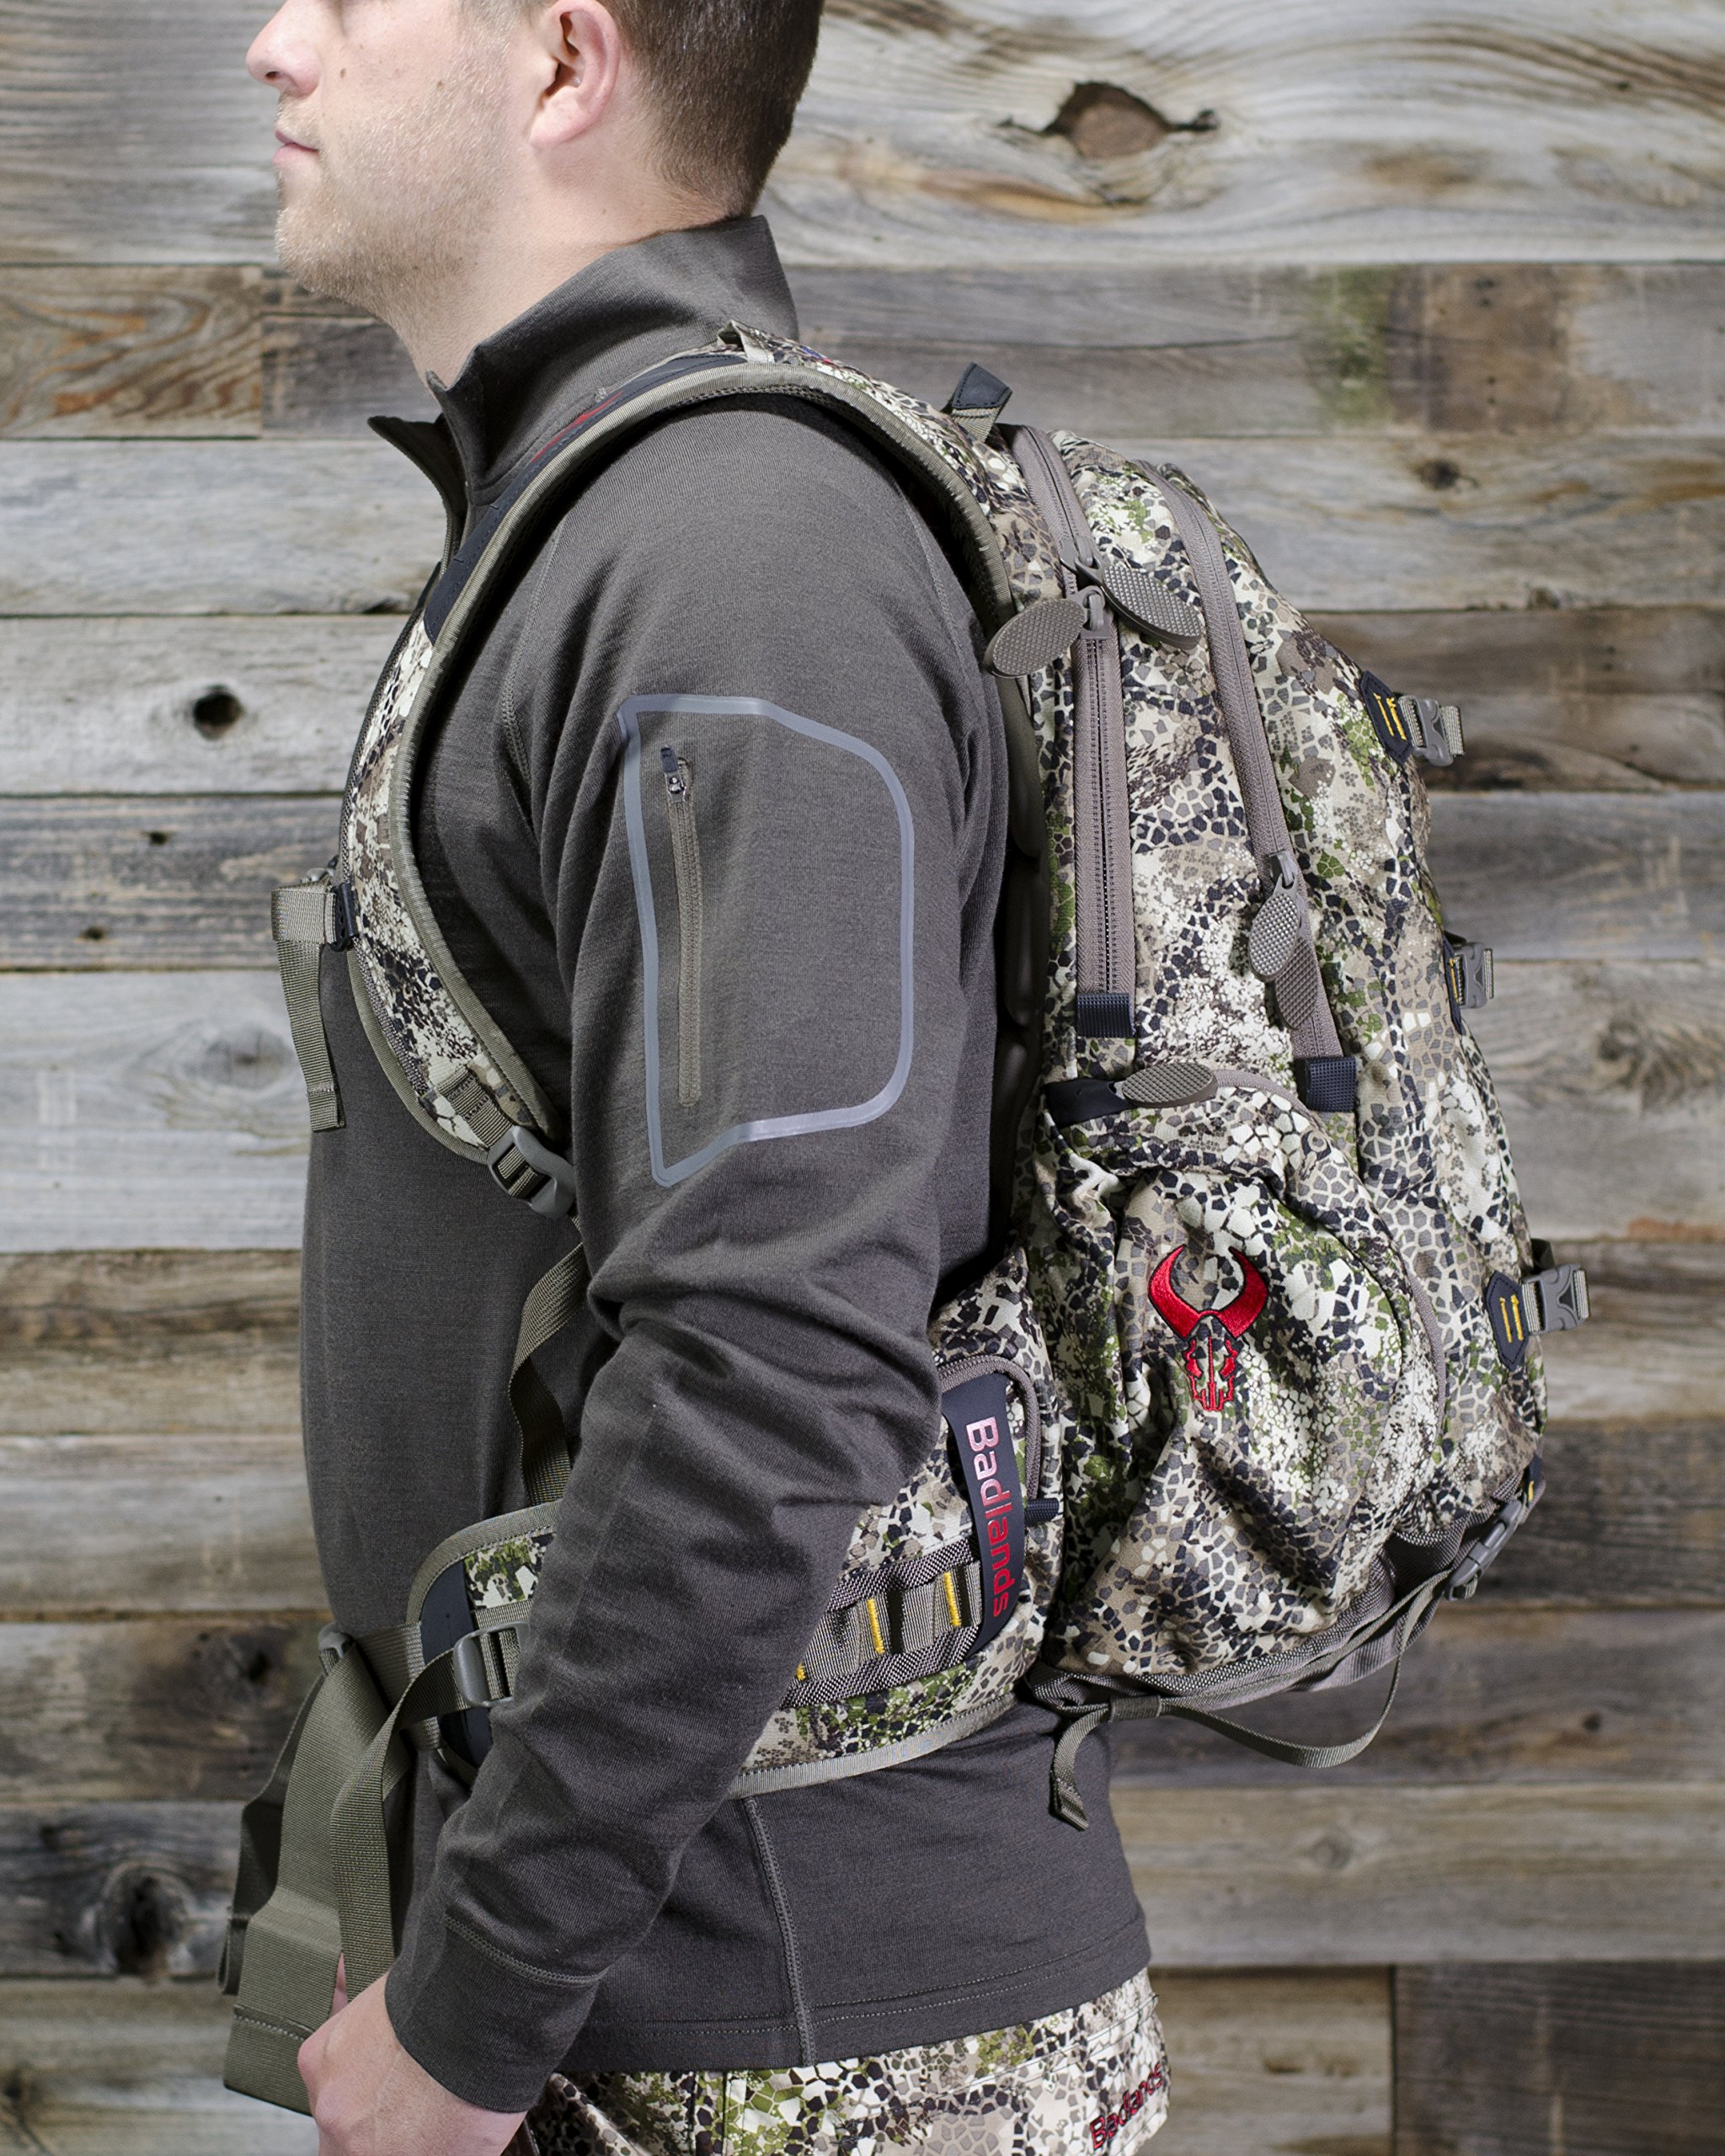 Badlands Superday Camouflage Hunting Backpack - Bow, Rifle, and Pistol Compatible, Approach Camo by Badlands (Image #9)